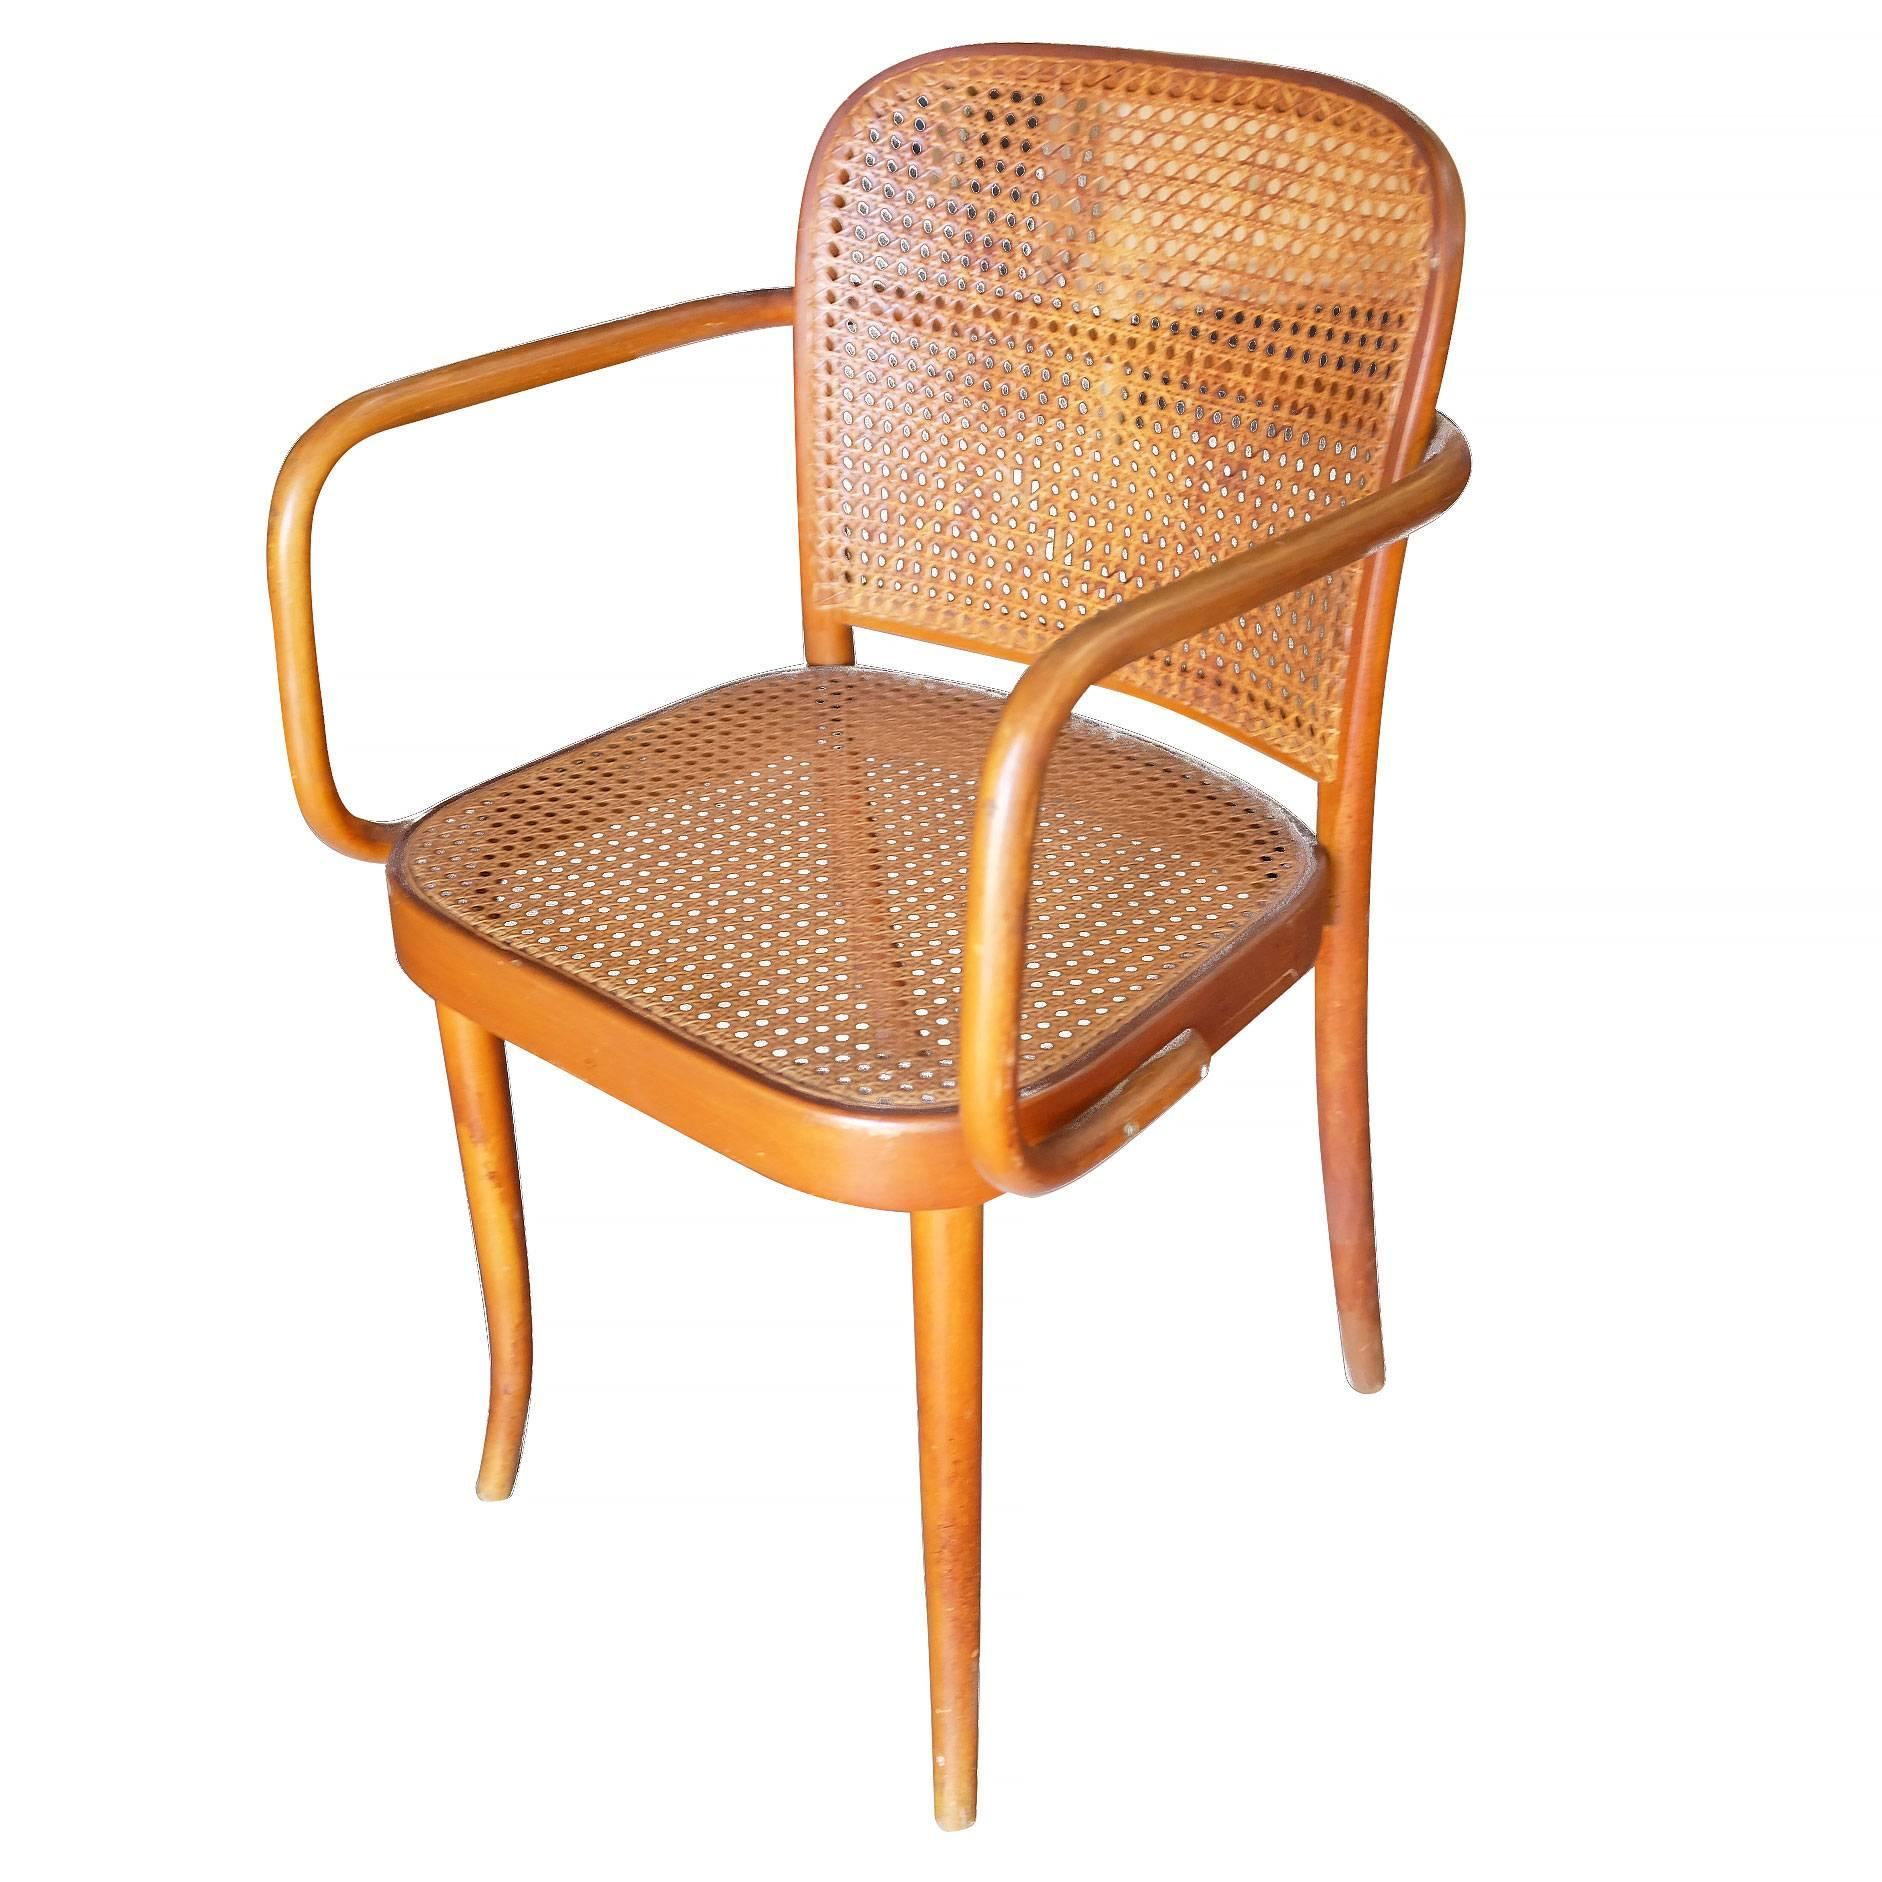 Ordinaire Set Of Four, Thonet Number 811 Bentwood Cane Chair With Bent Beech Wood  Frame